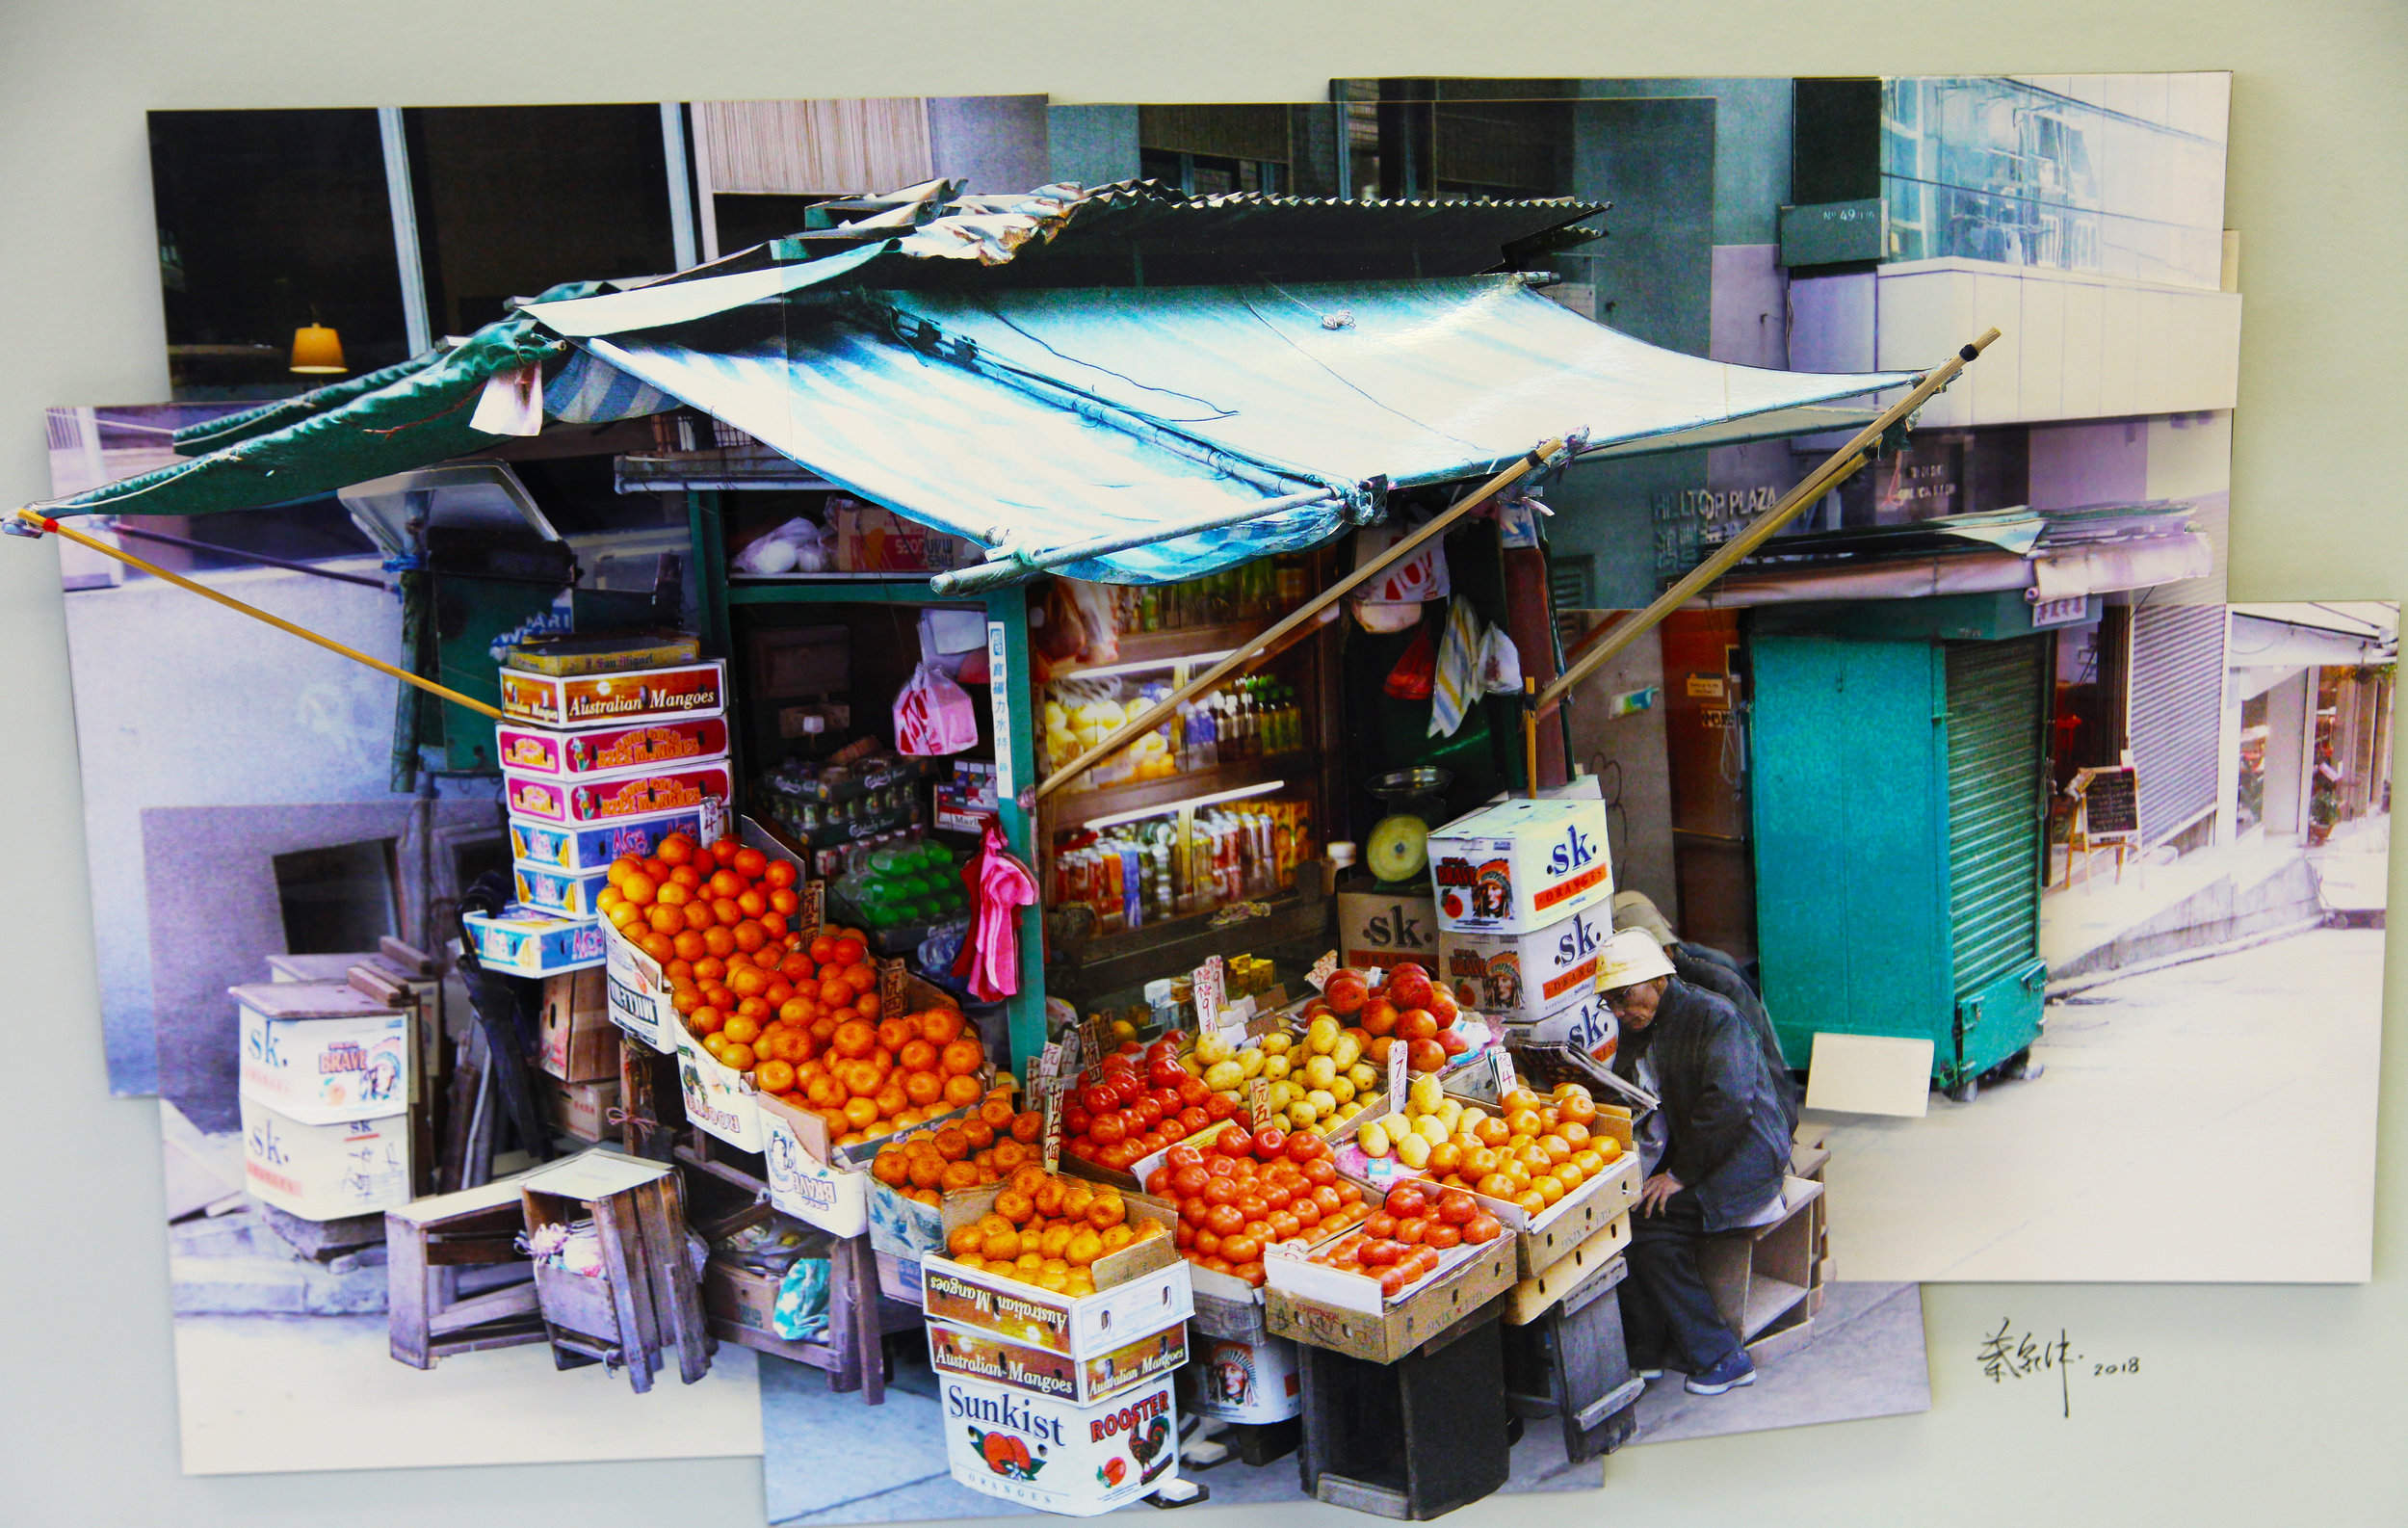 葉家偉 Alexis Ip '水果檔‧中環 Fruit Stall in Central' (Hong Kong, 2018) Courtesy of Blue Lotus Gallery.jpg